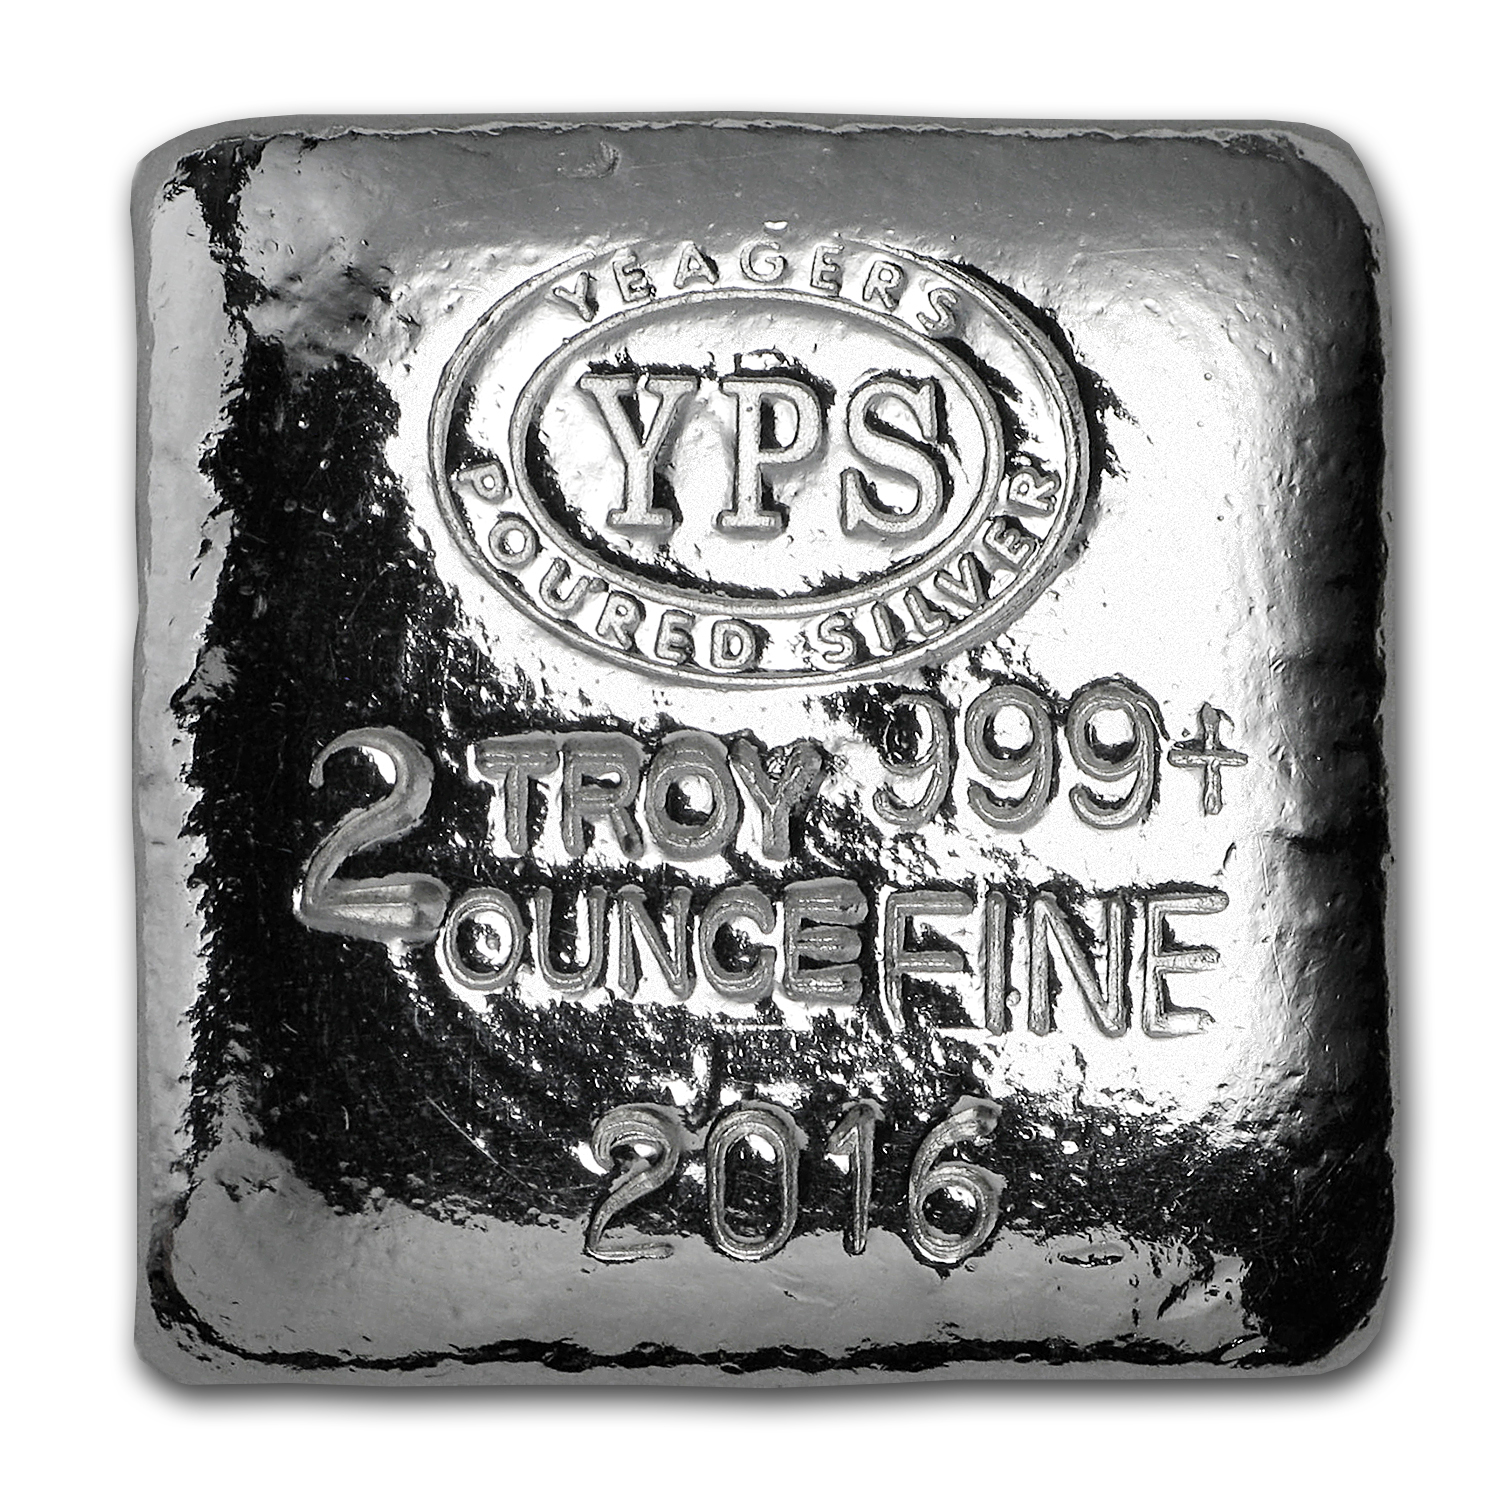 2 oz Silver - Yeager Poured Silver (Packaged Silver)